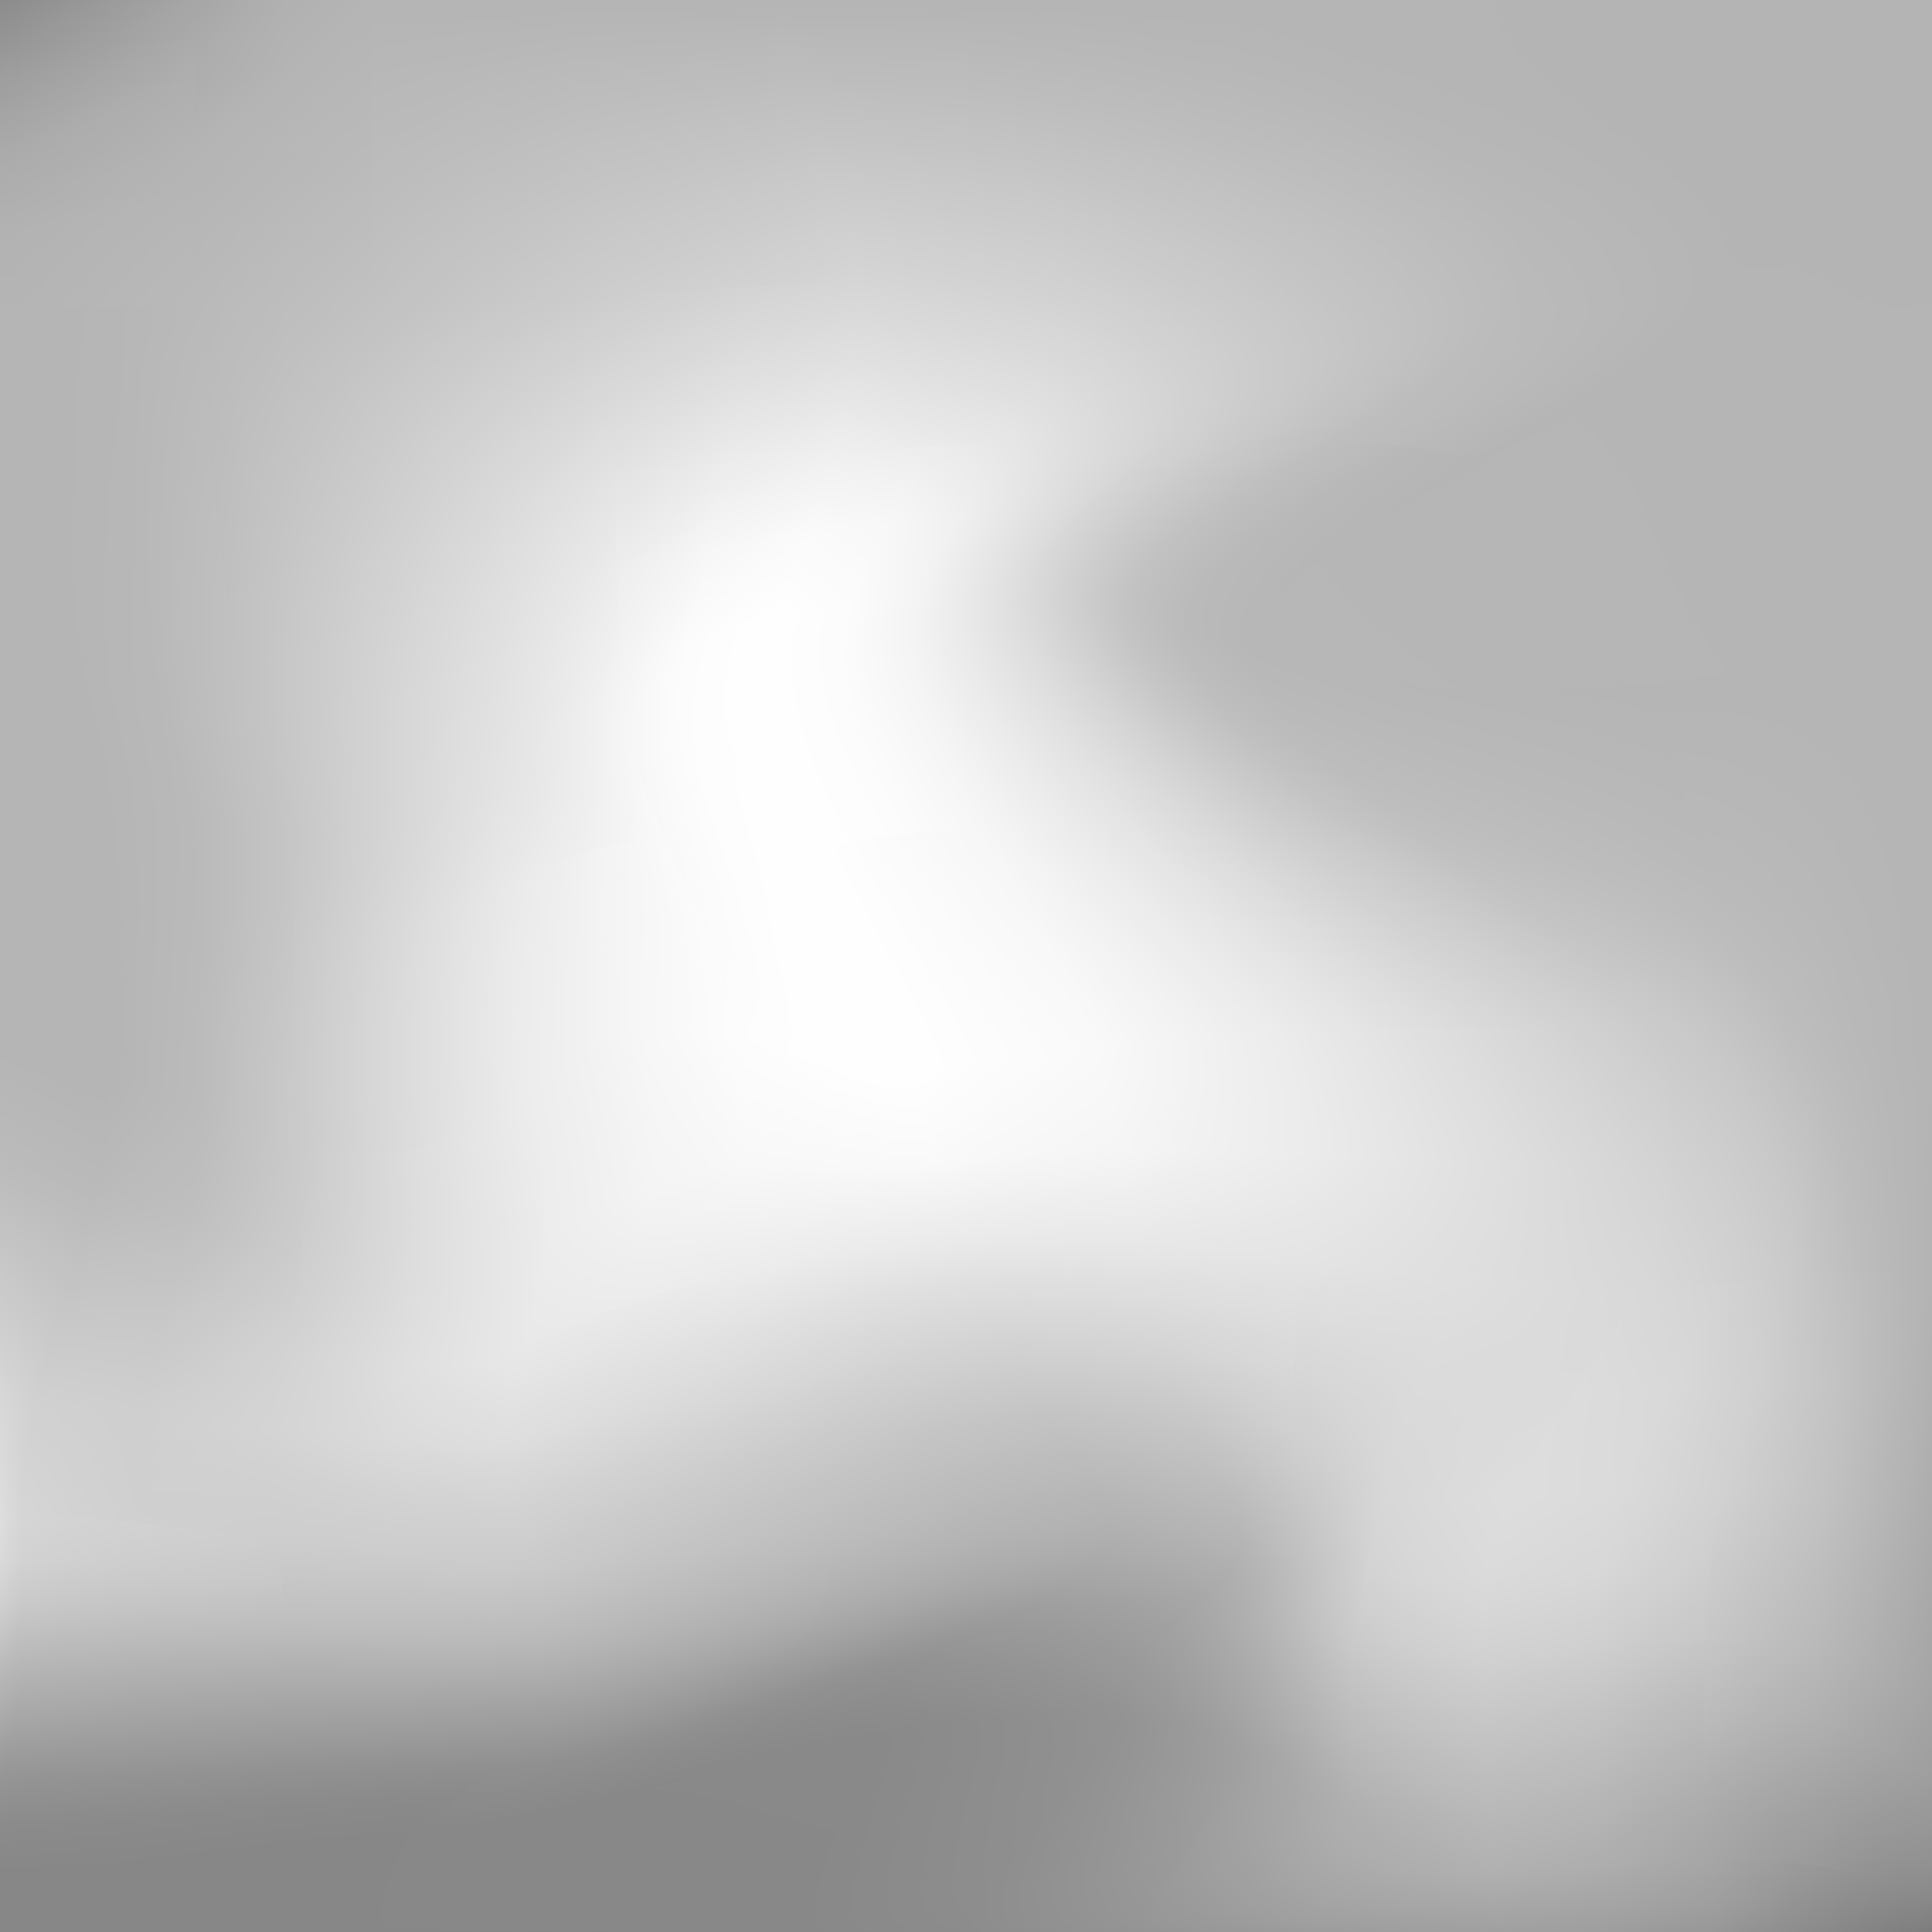 Blurred silver effect holographic gradient background example image 6